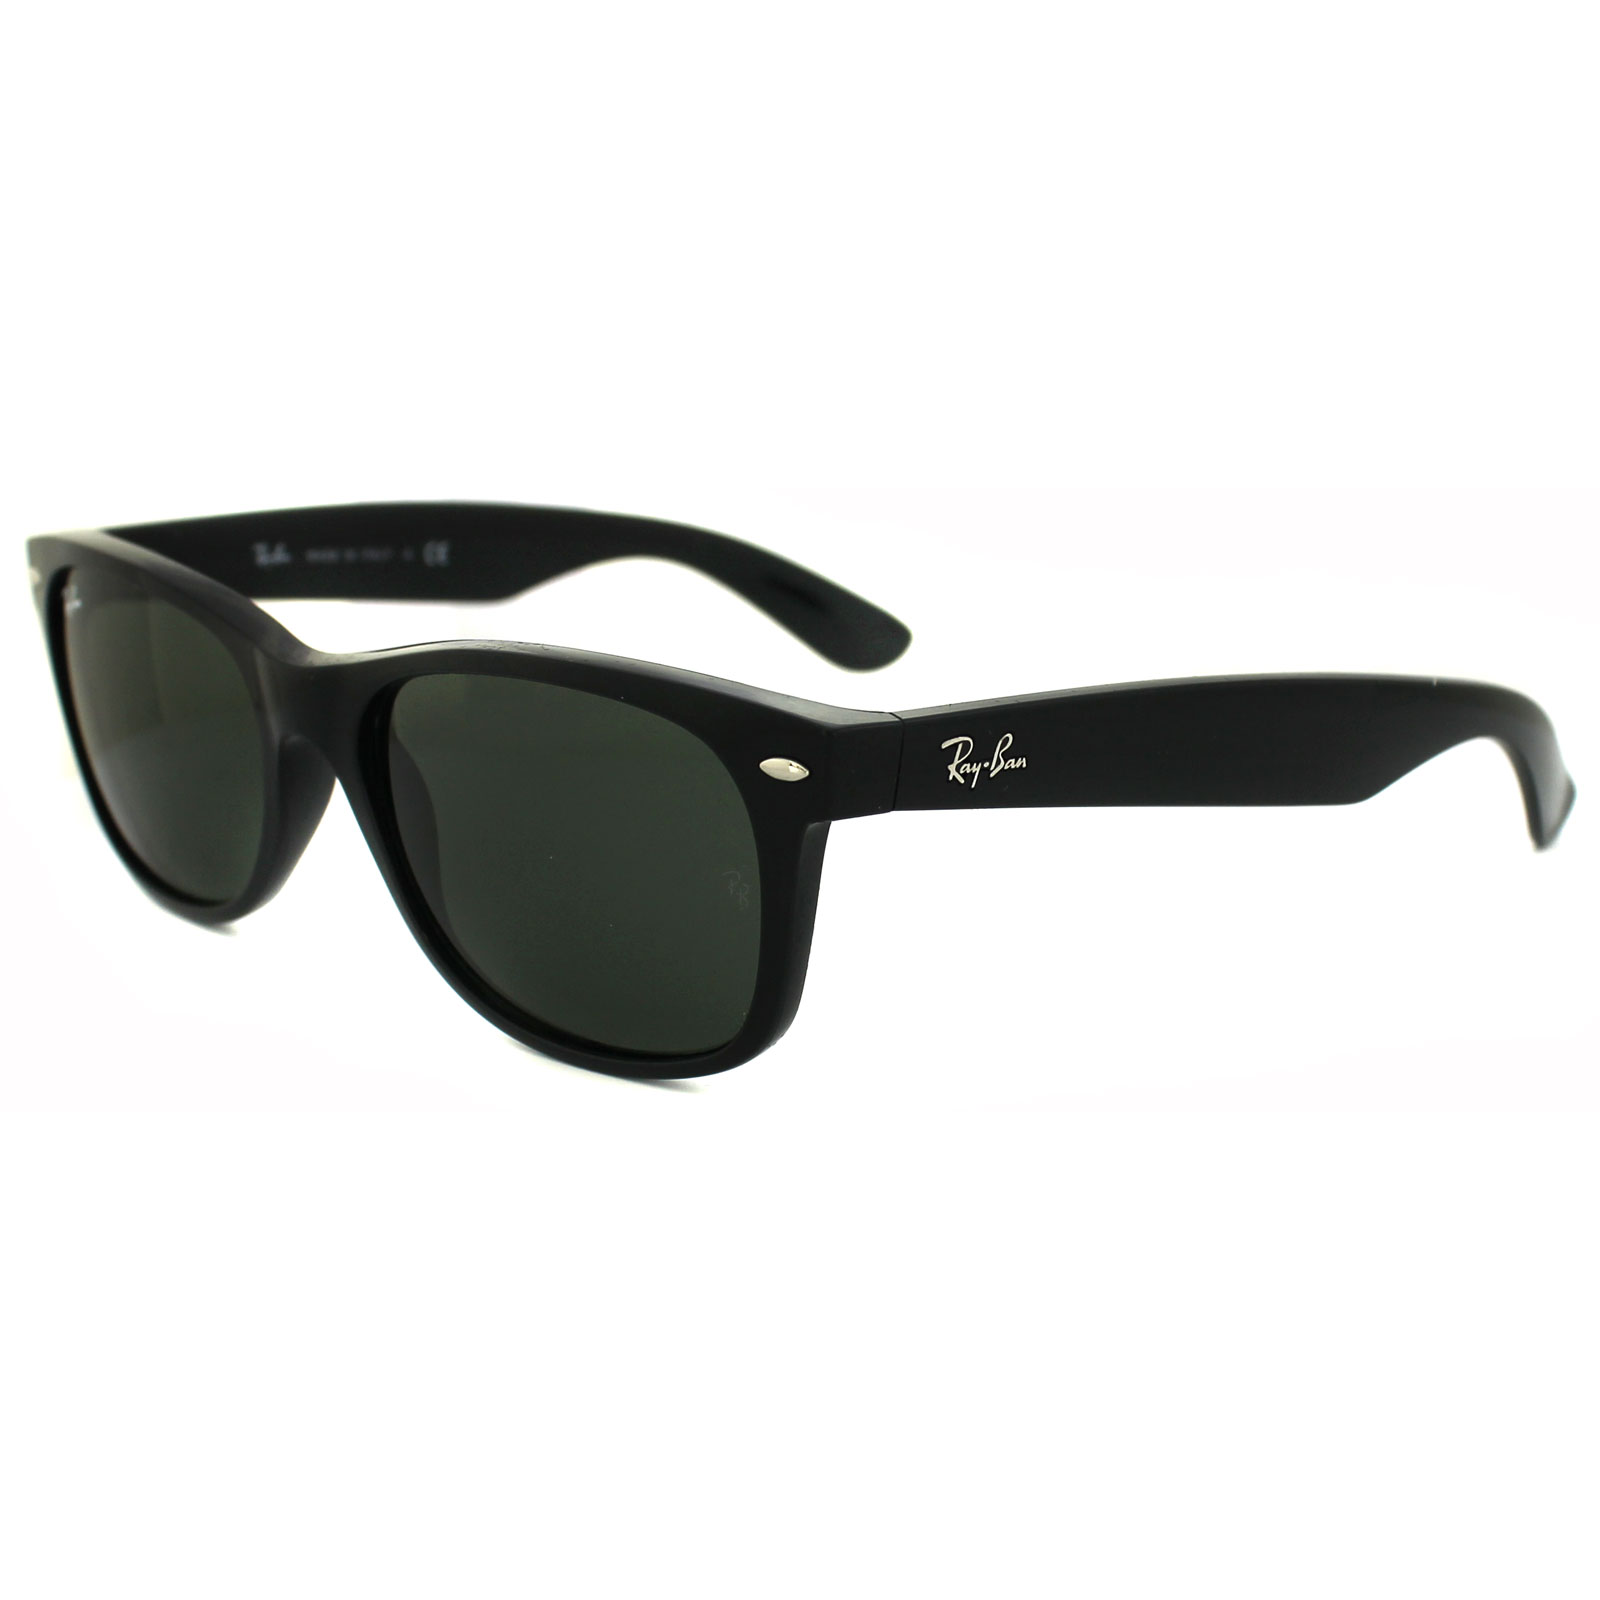 discount ray ban new wayfarer sunglasses  ray ban new wayfarer 2132 sunglasses